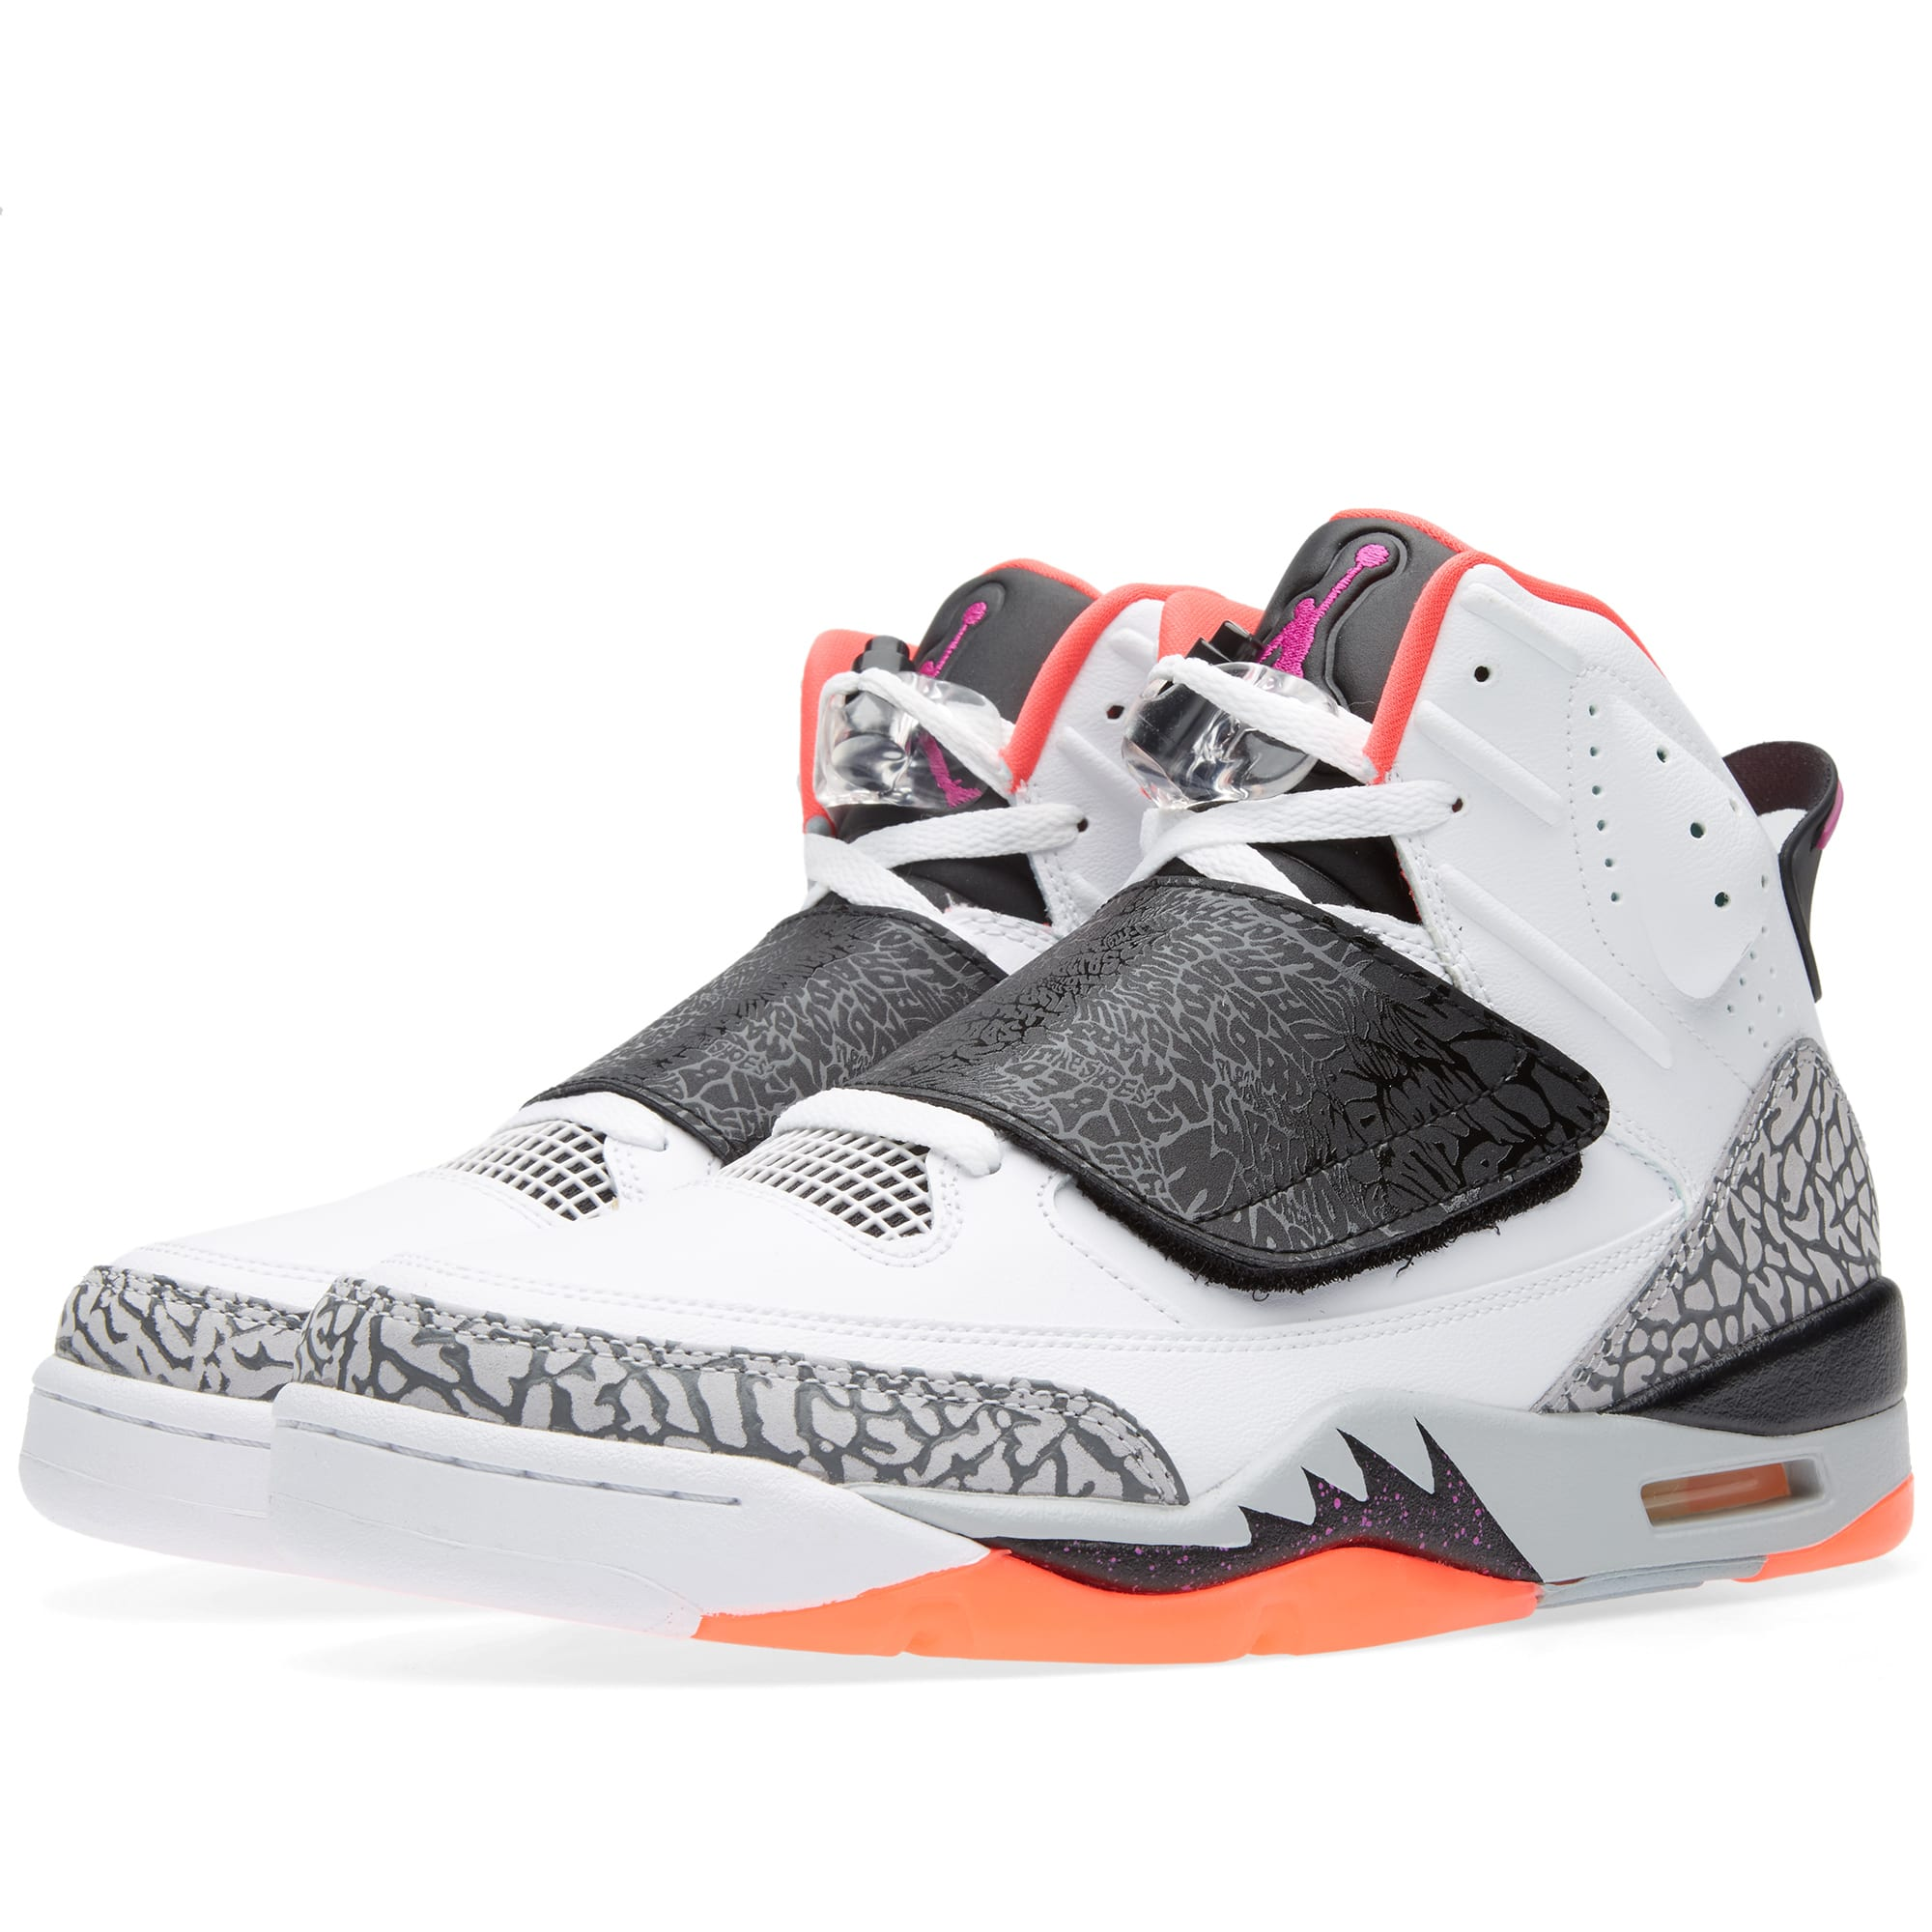 purchase cheap b73ce a4e38 Nike Air Jordan Son of Mars White, Fuchsia Flash   Black   END.